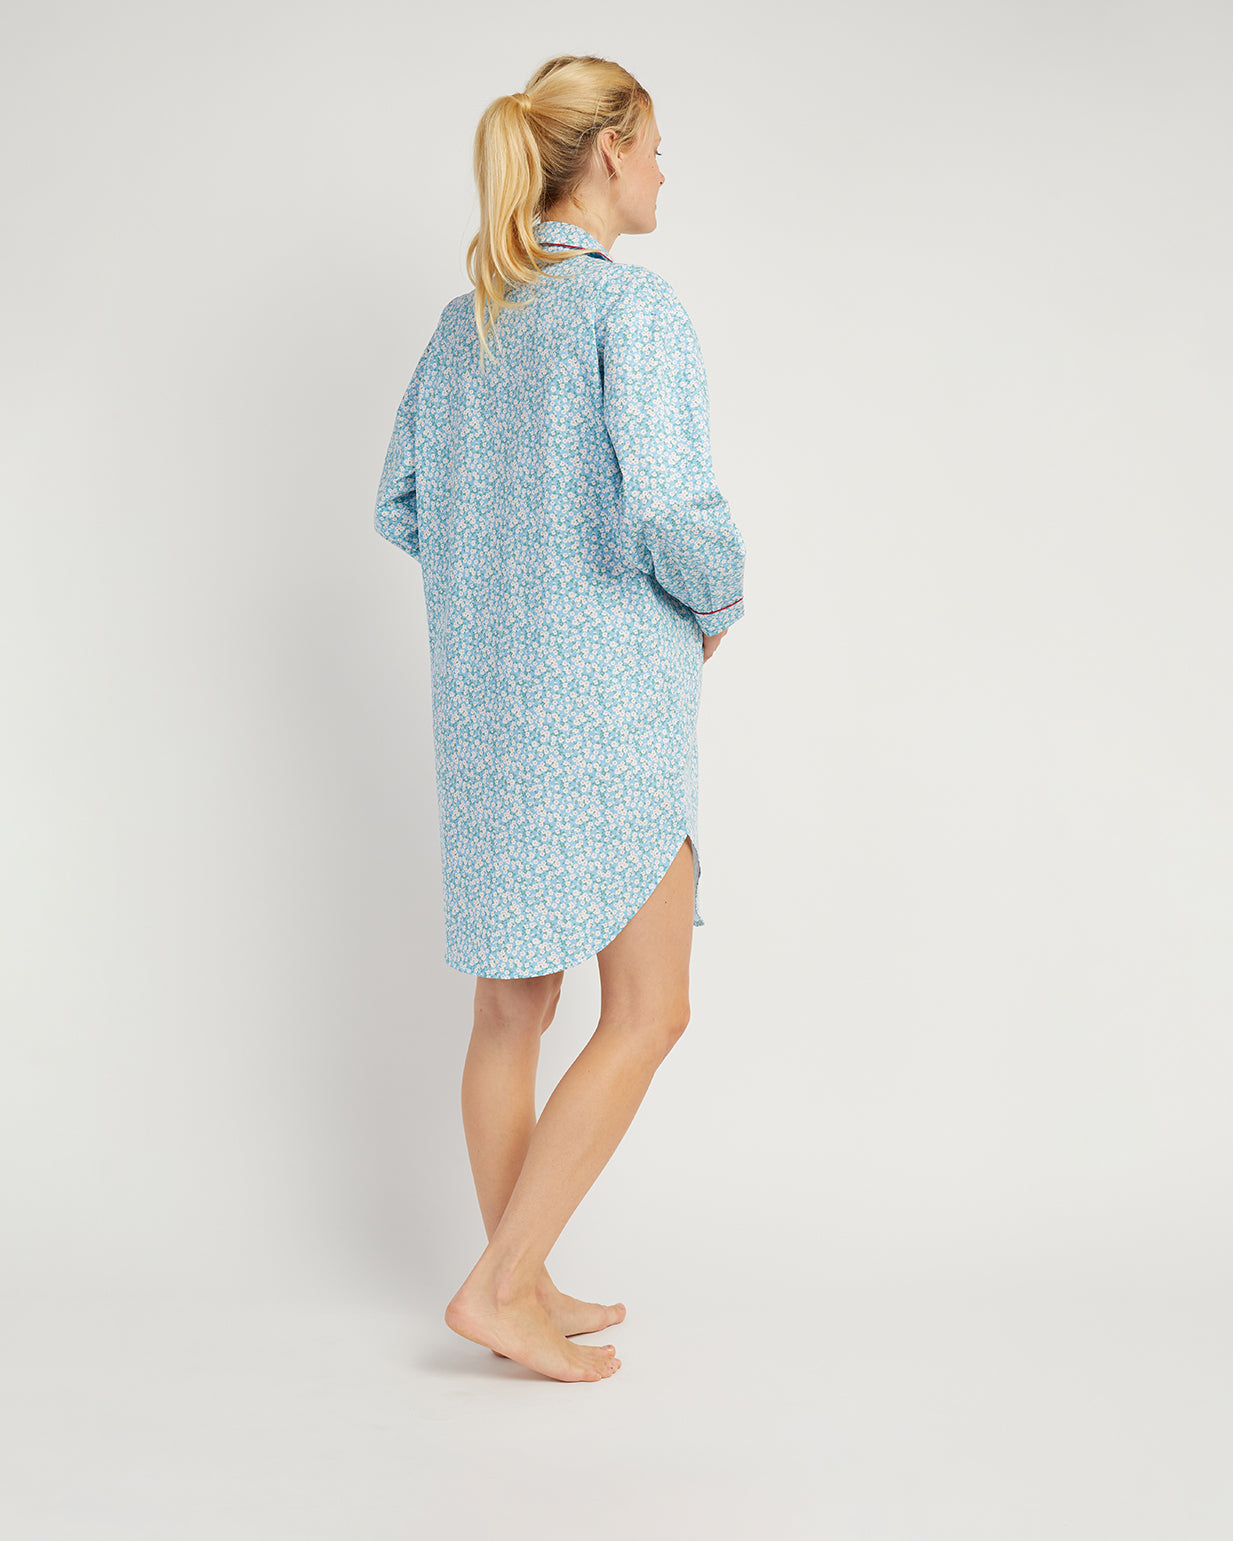 Women's Maternity Nightshirt Blue Floral | Bonsoir of London